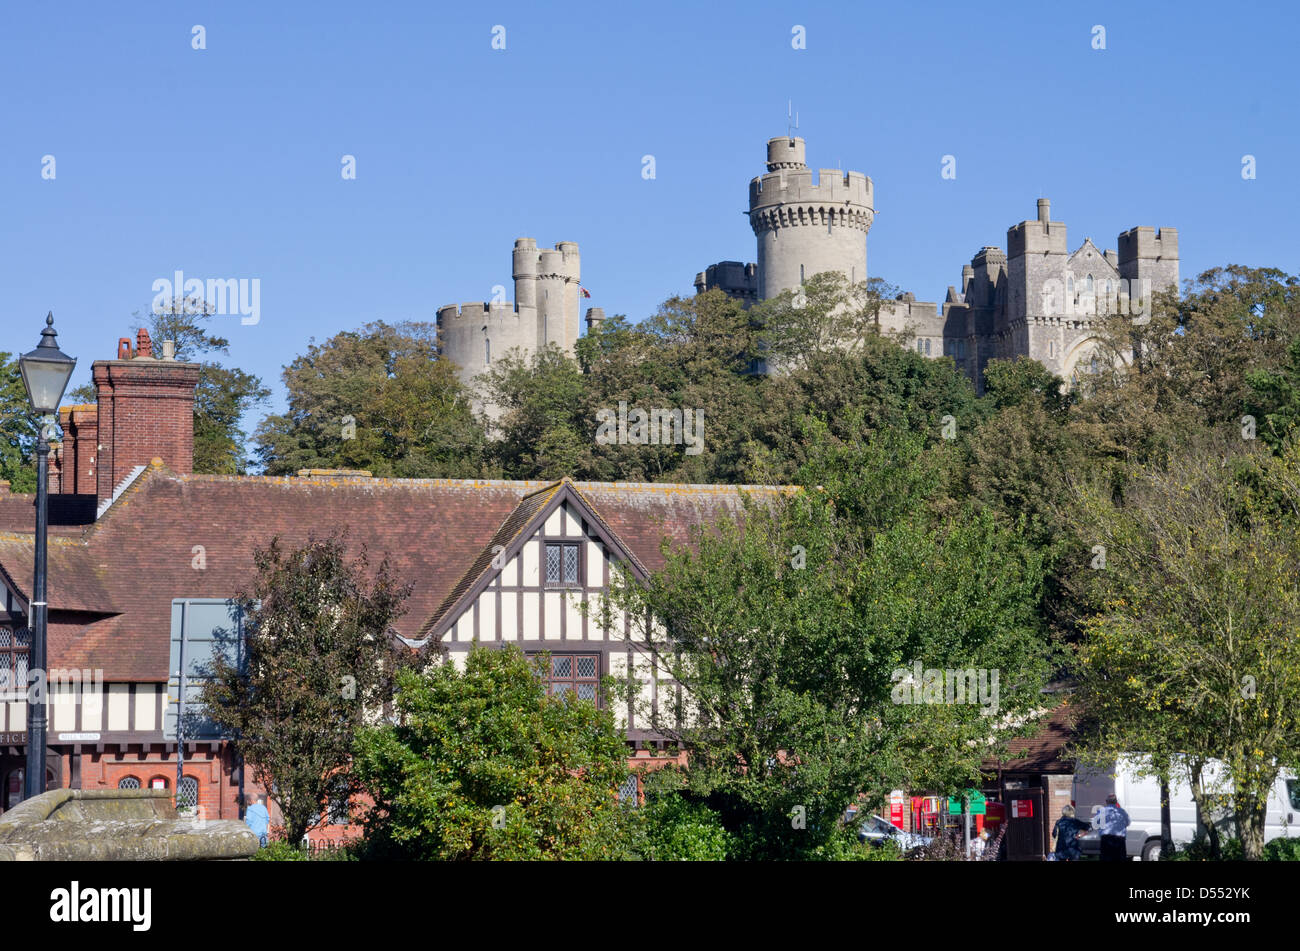 Arundel town and Castle - Stock Image